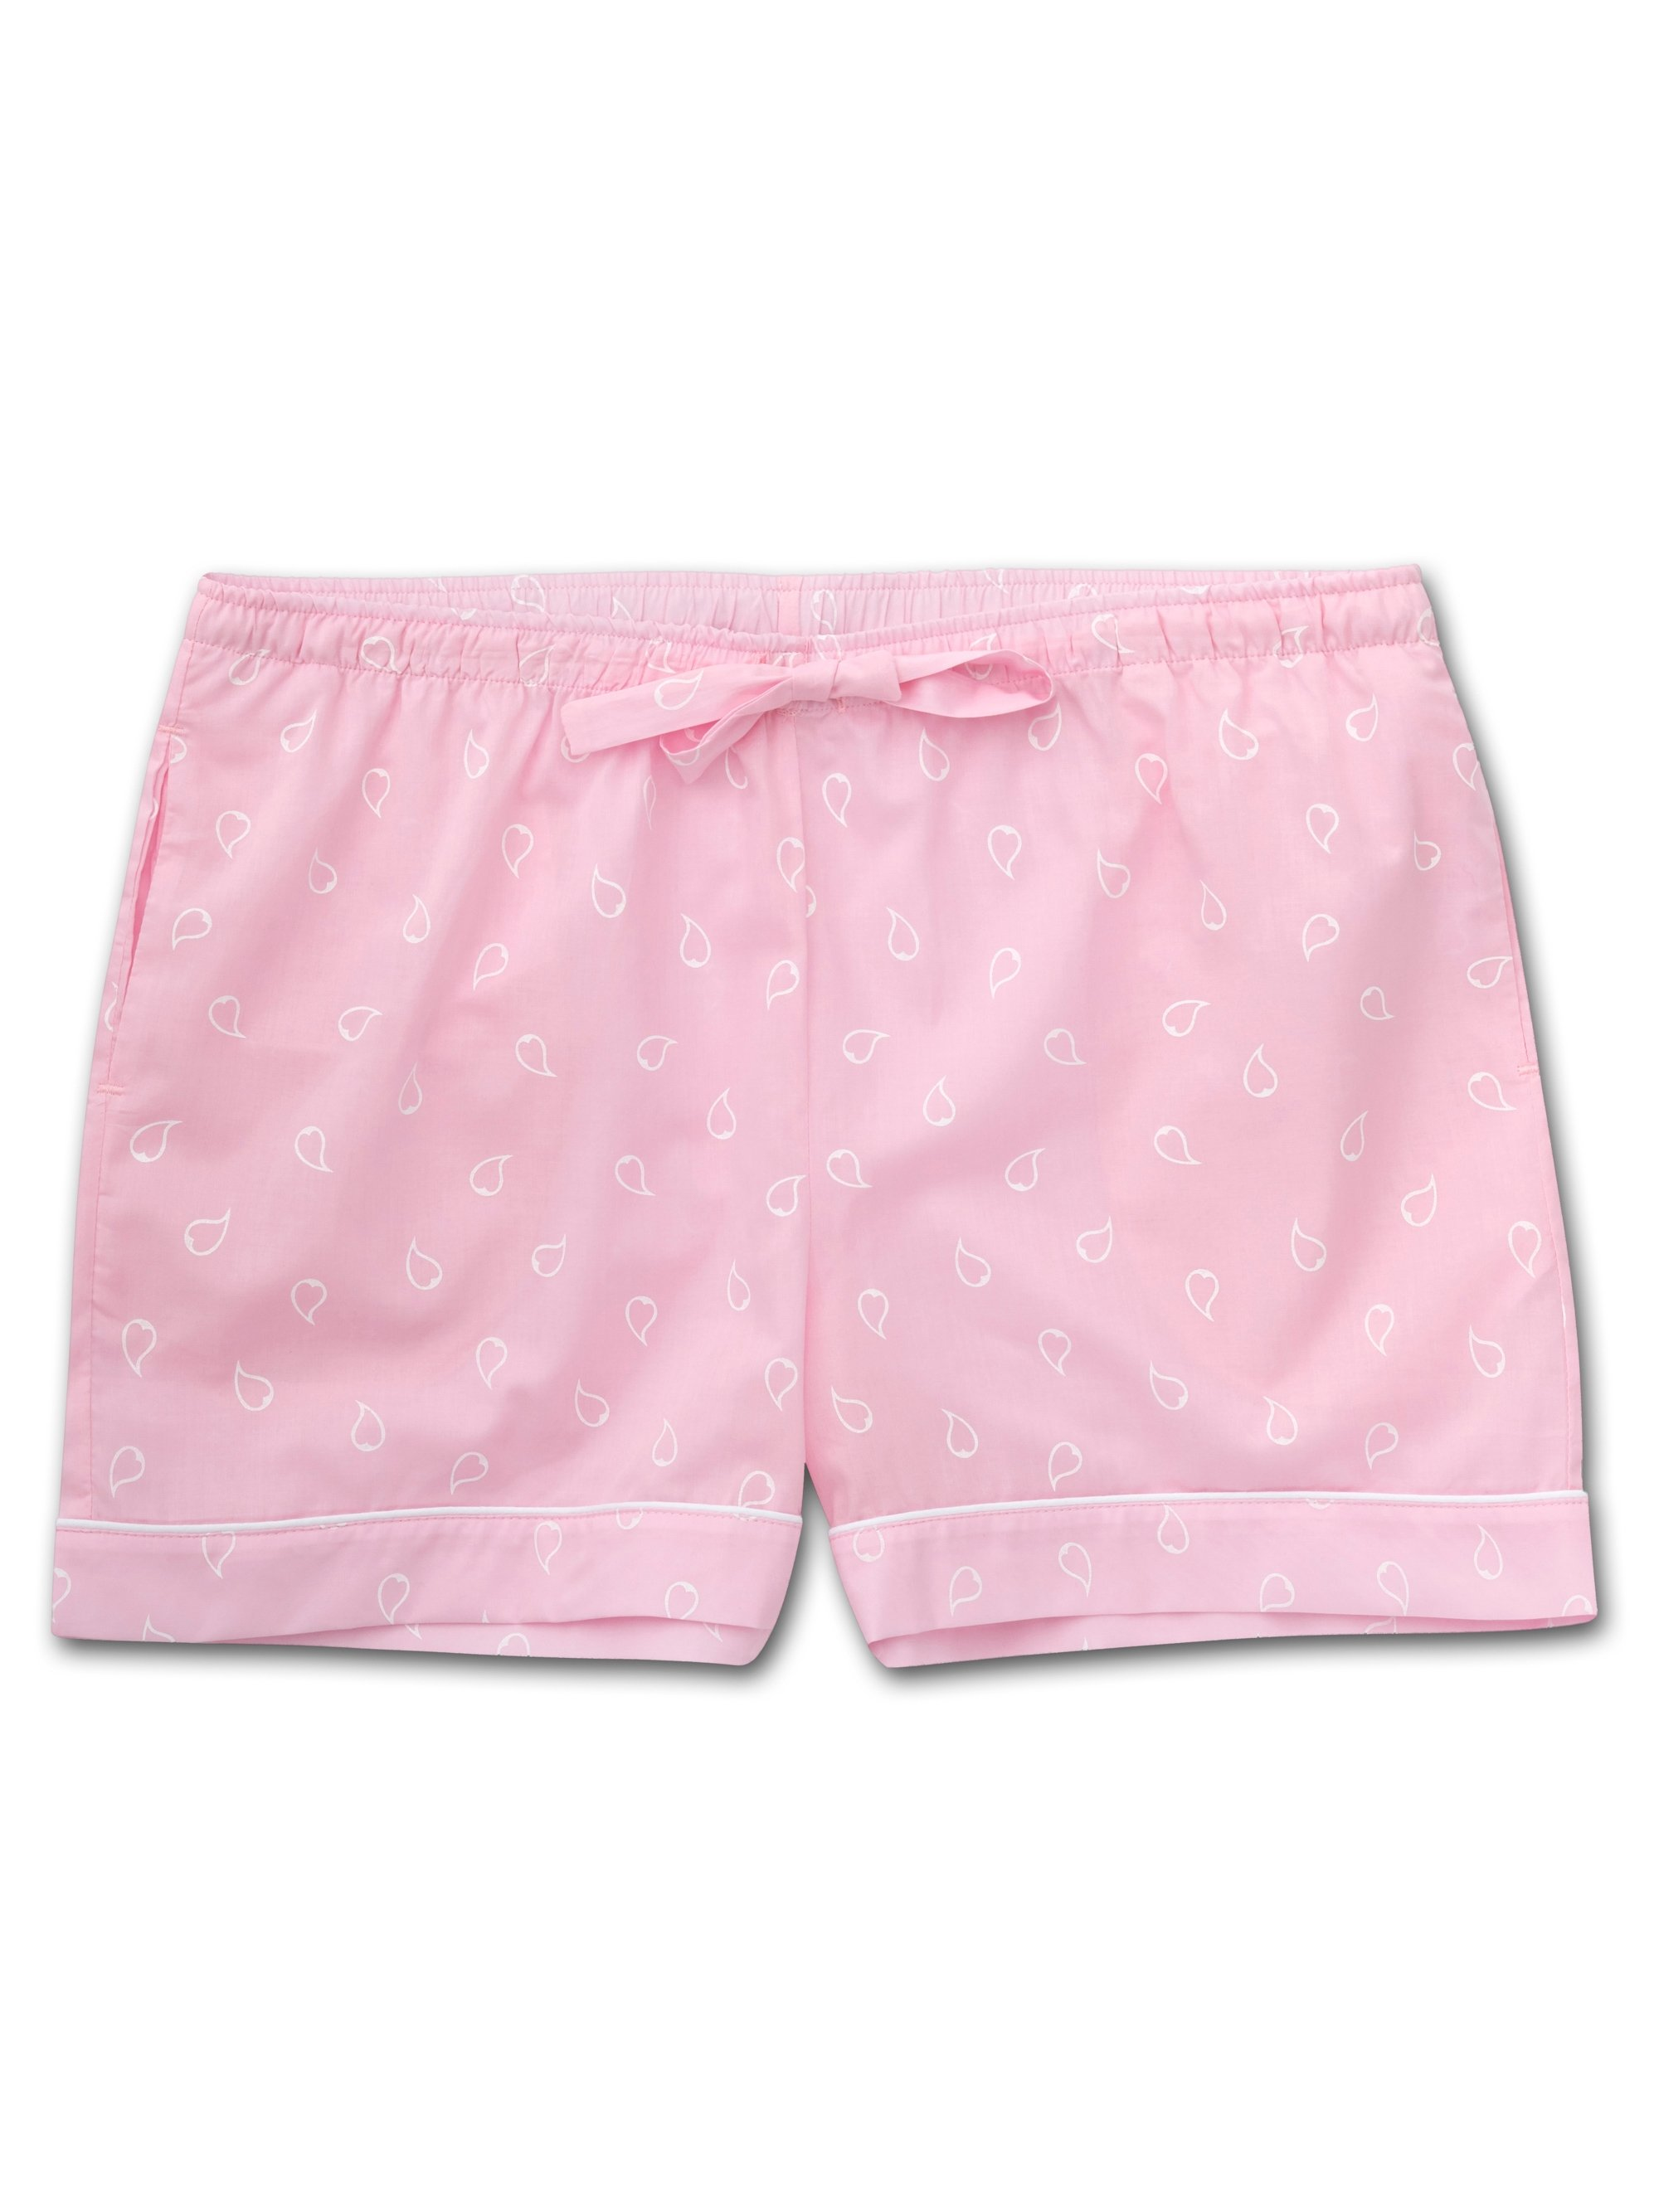 Women's Lounge Shorts Nelson 74 Cotton Batiste Pink